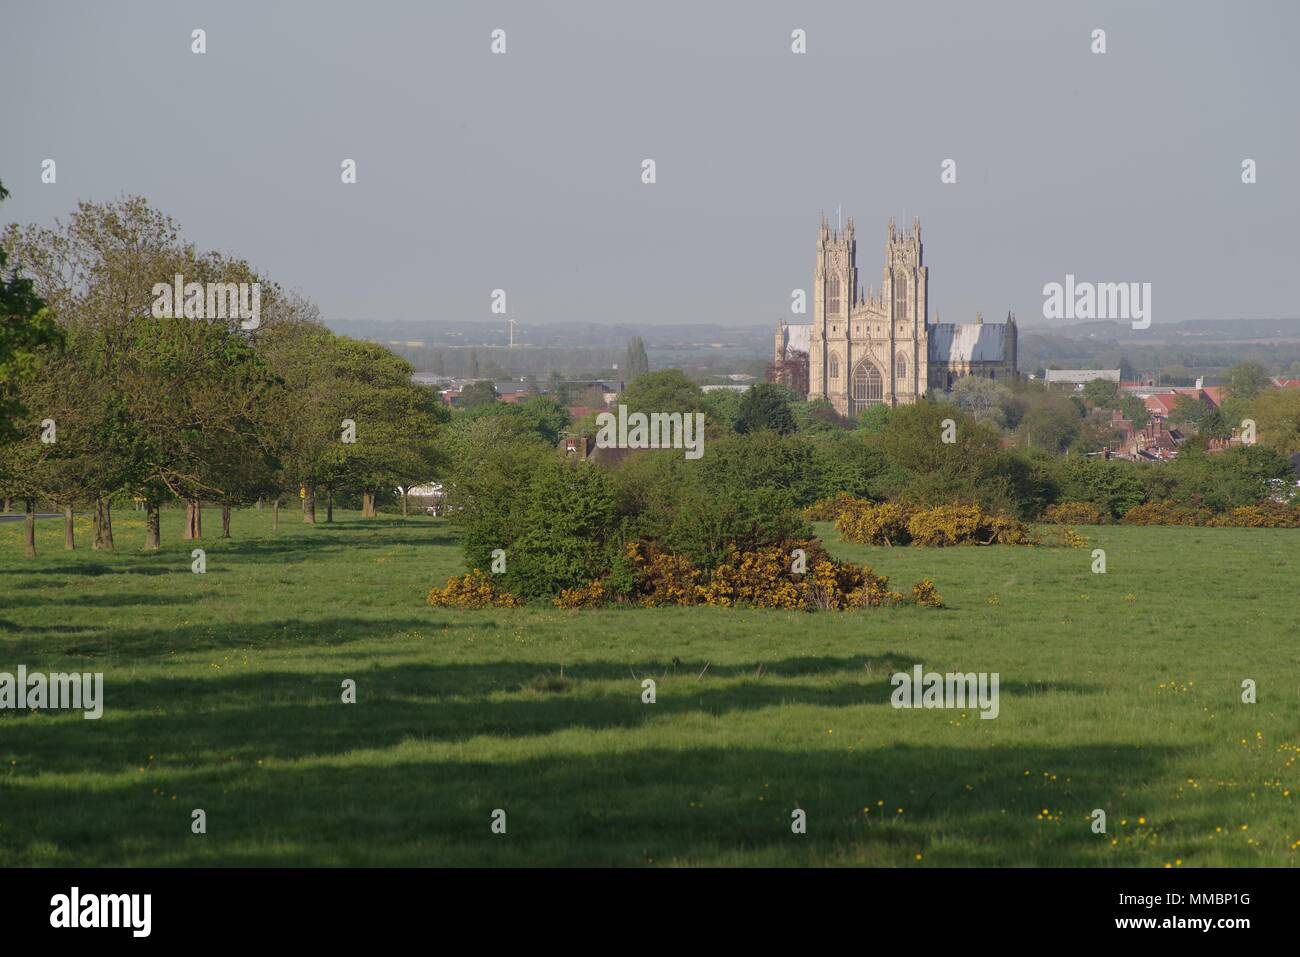 Beverley with Beverley Minster from Beverley Westwood, East Yorkshire, UK, England, Angleterre - Stock Image